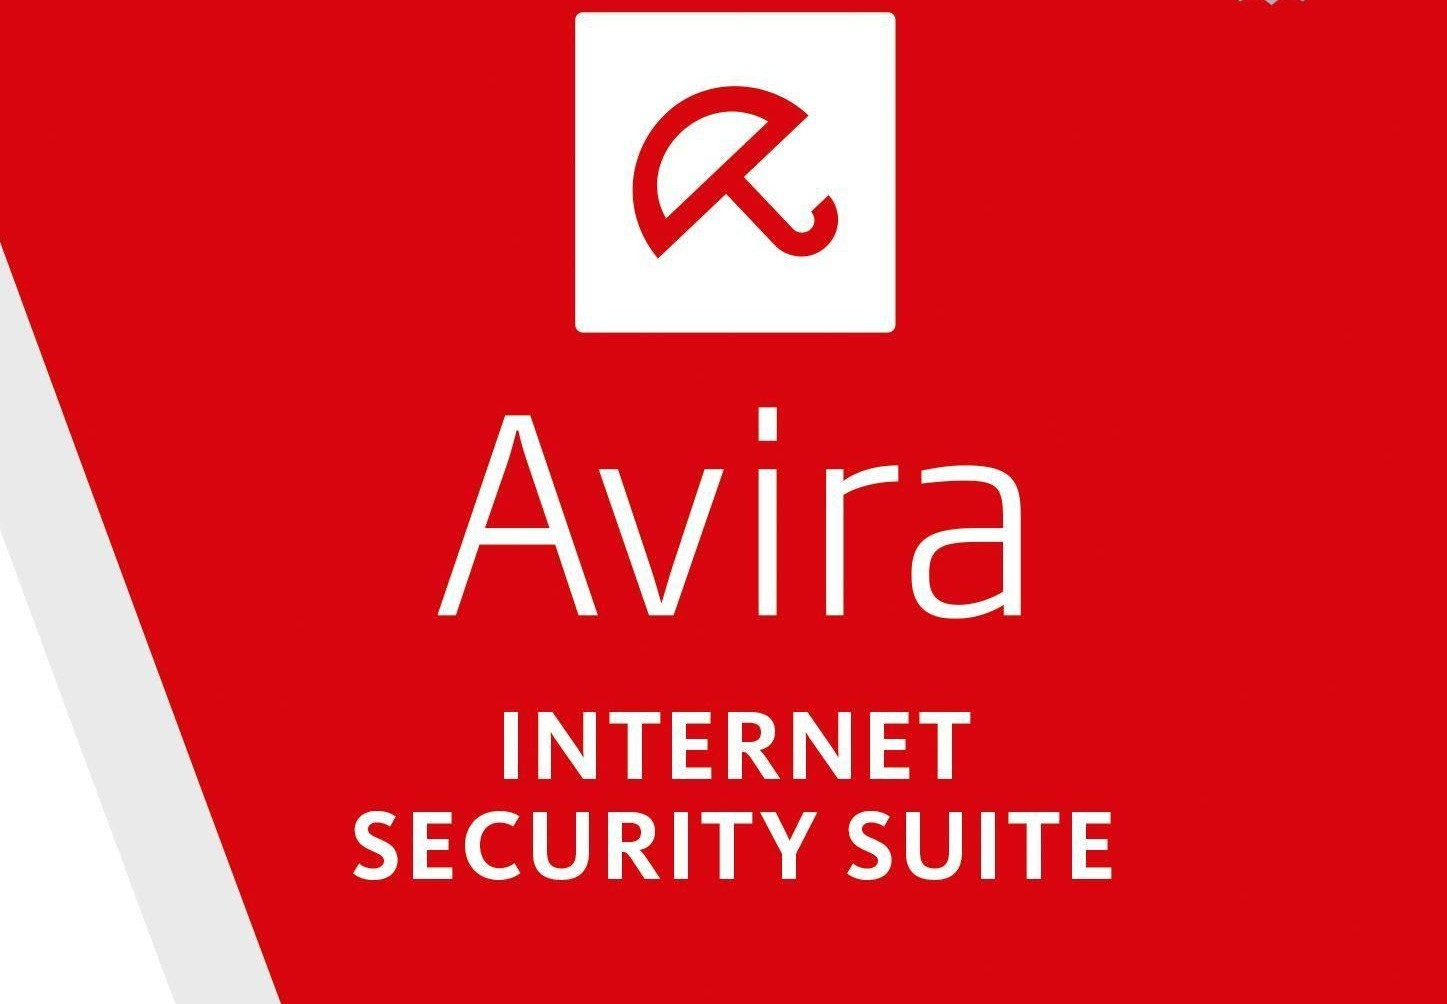 Avira Internet Security Suite 2020 Key (1 Year / 3 Devices)